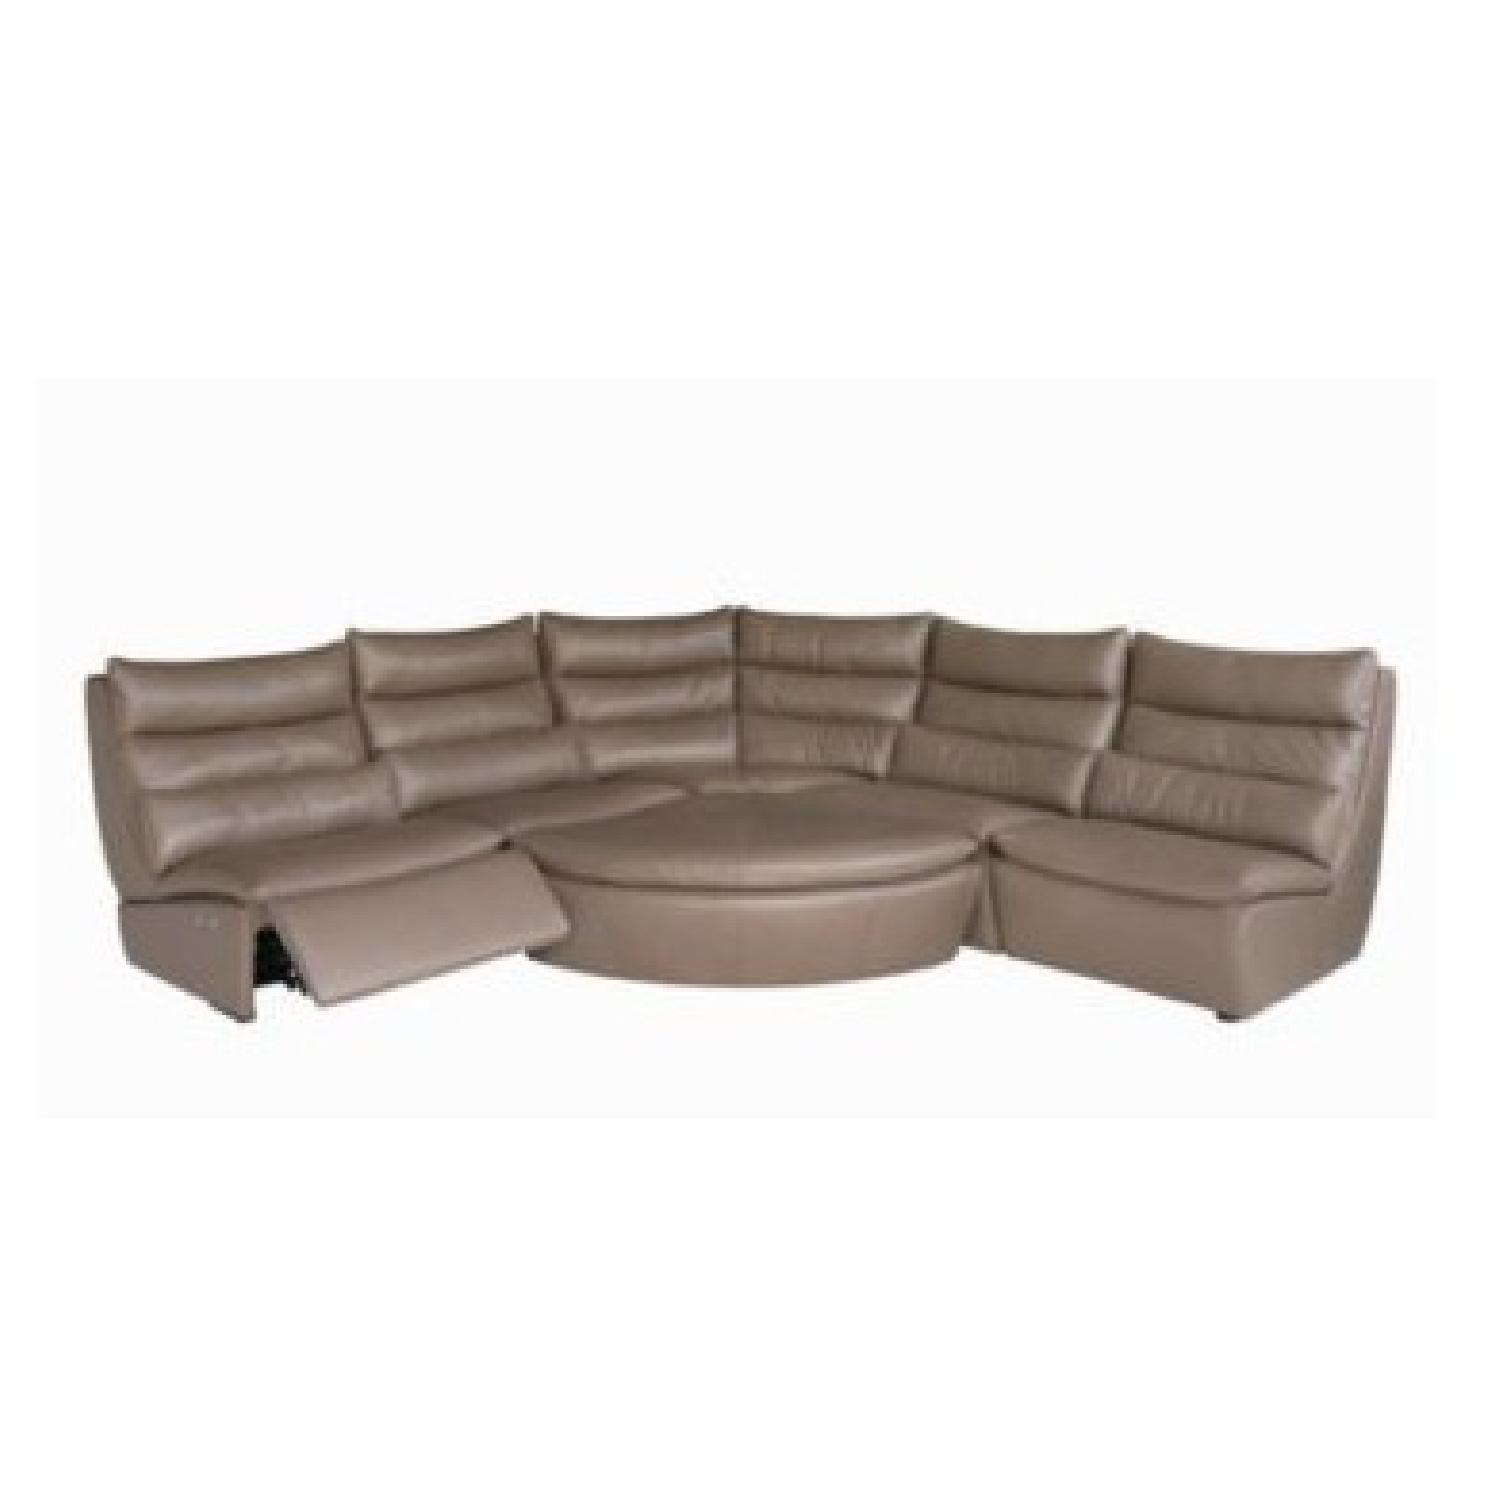 Chateau Du0027ax Messina Sectional Sofa W/ 2 Electric Recliners ...